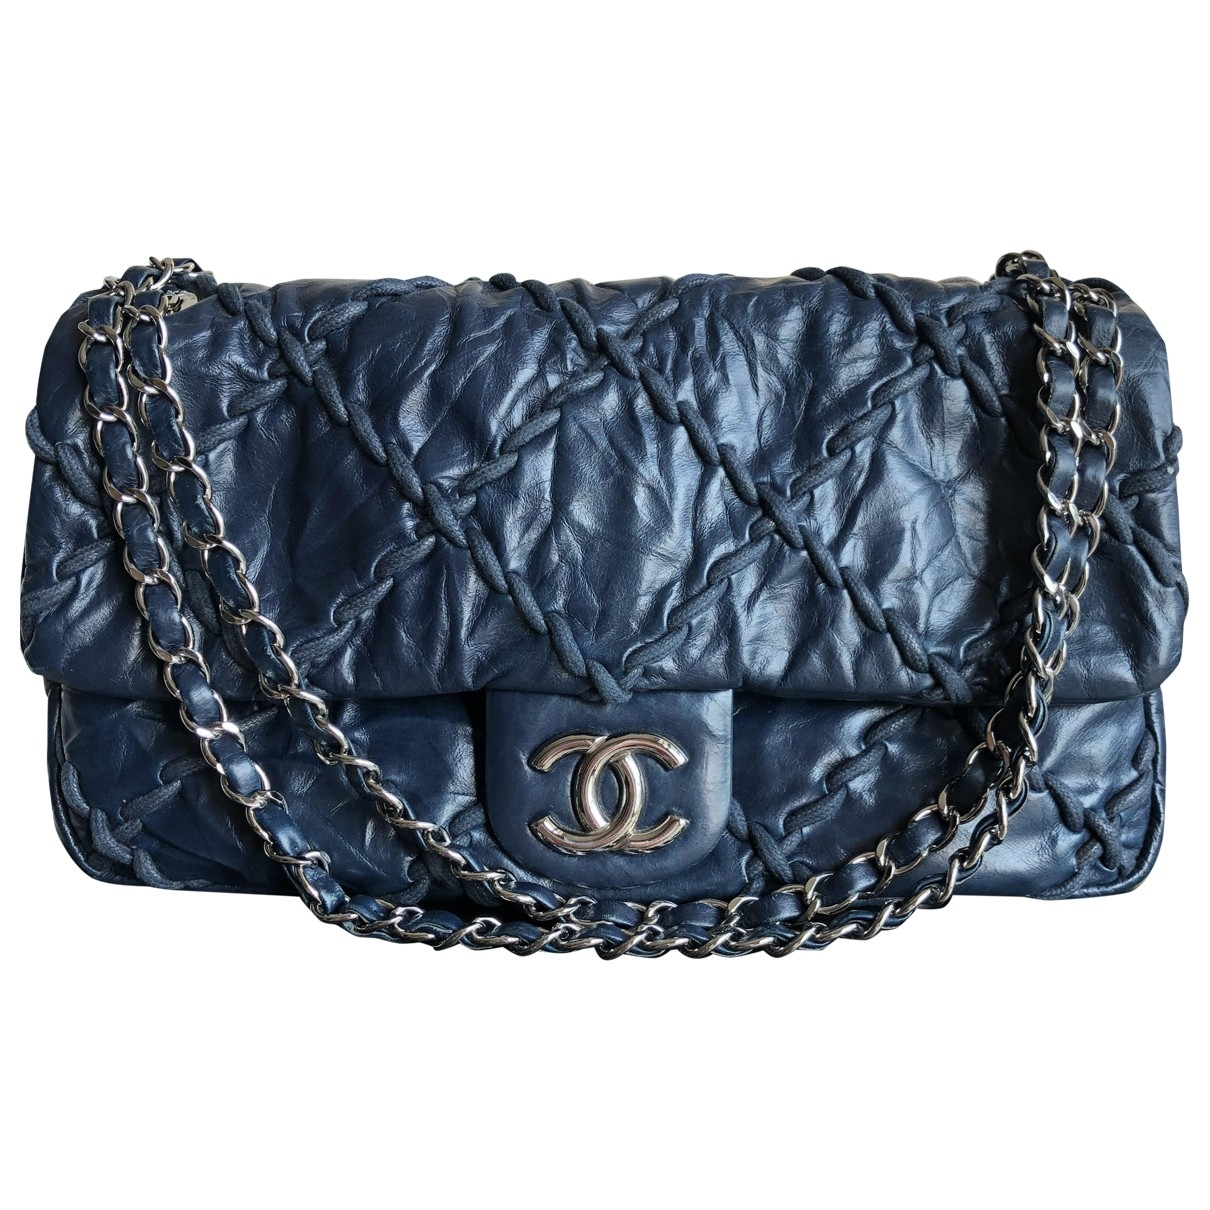 Chanel Timeless/Classique Blue Leather handbag for Women \N